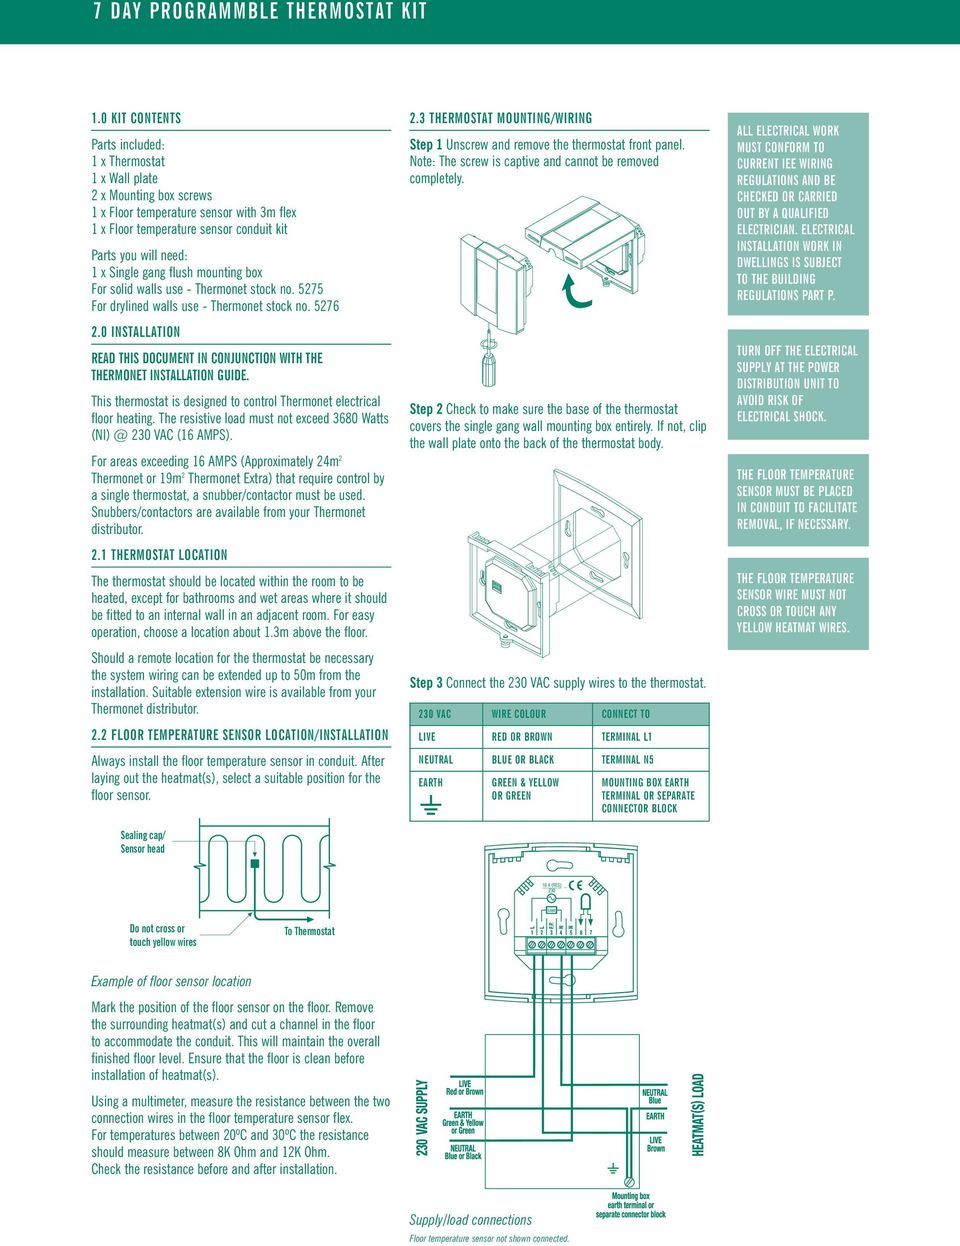 Thermonet Underfloor Heating Standard Thermostat Kit Stock Code Pdf 120 Volt Baseboard Heater Wiring Diagram For Single Gang Flush Mounting Box Solid Walls Use No 5275 Drylined